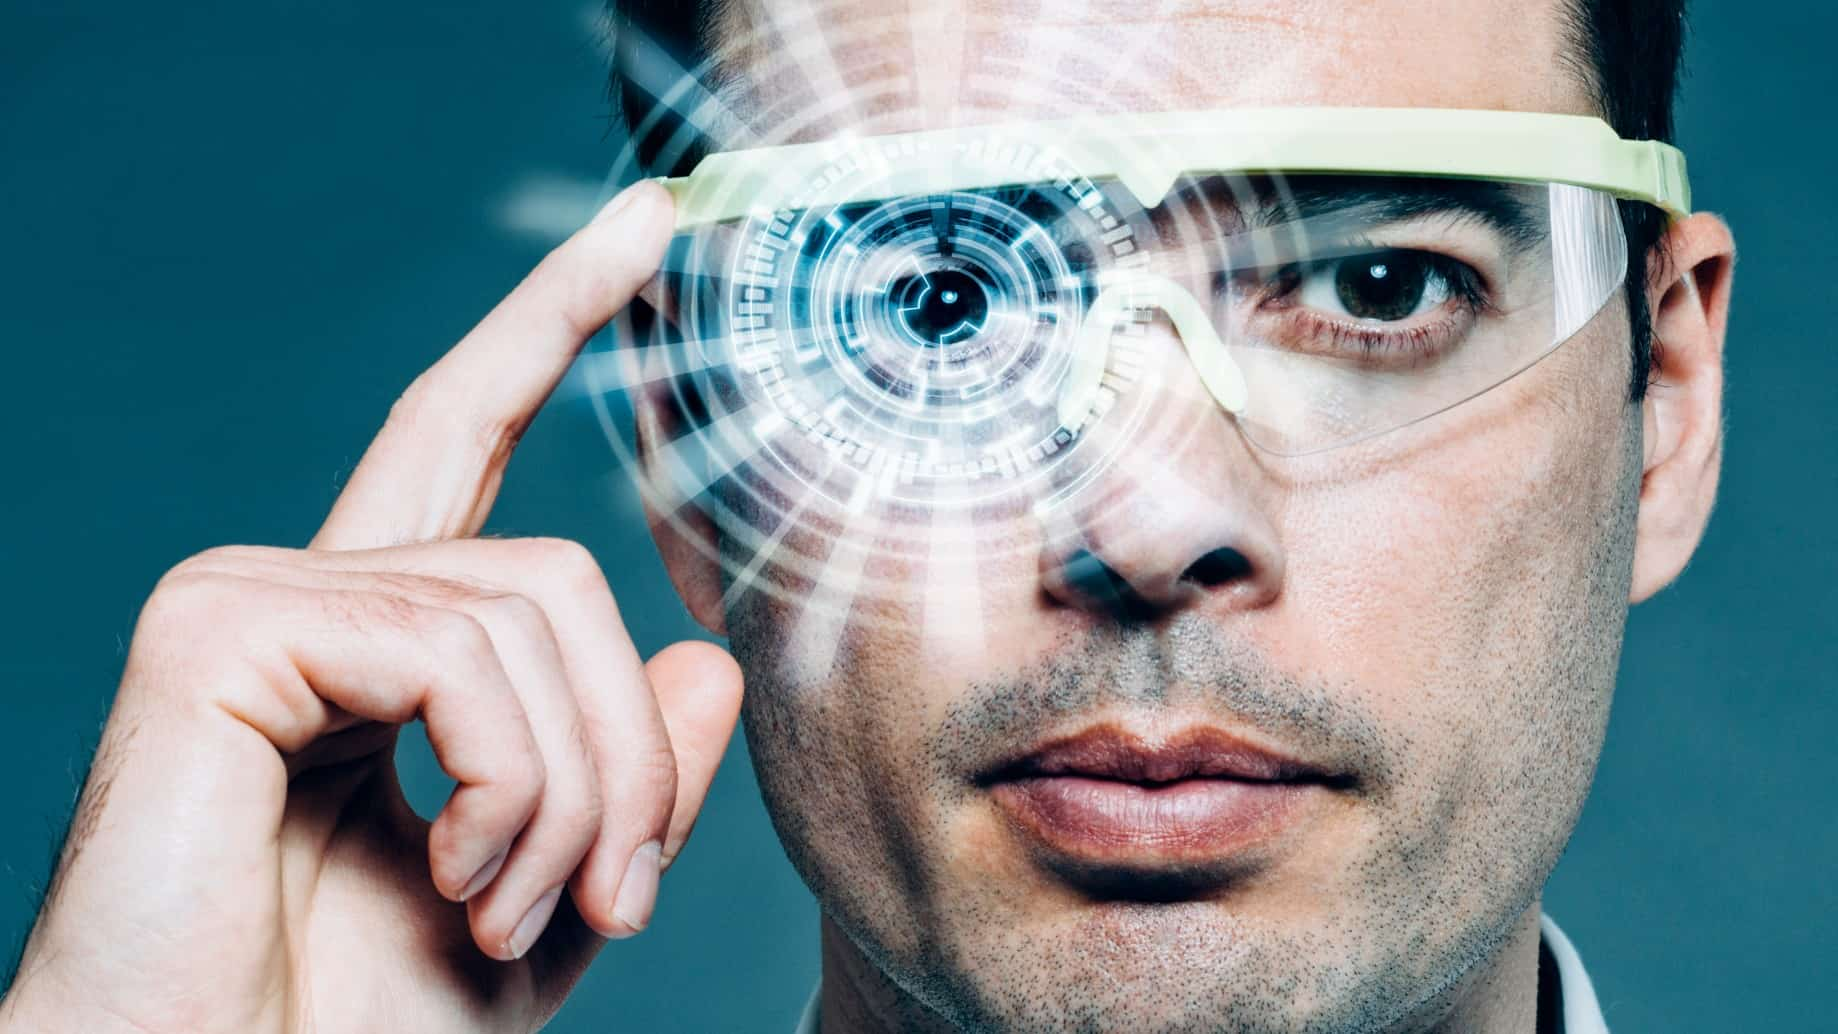 tech asx share price represented by man wearing smart glasses